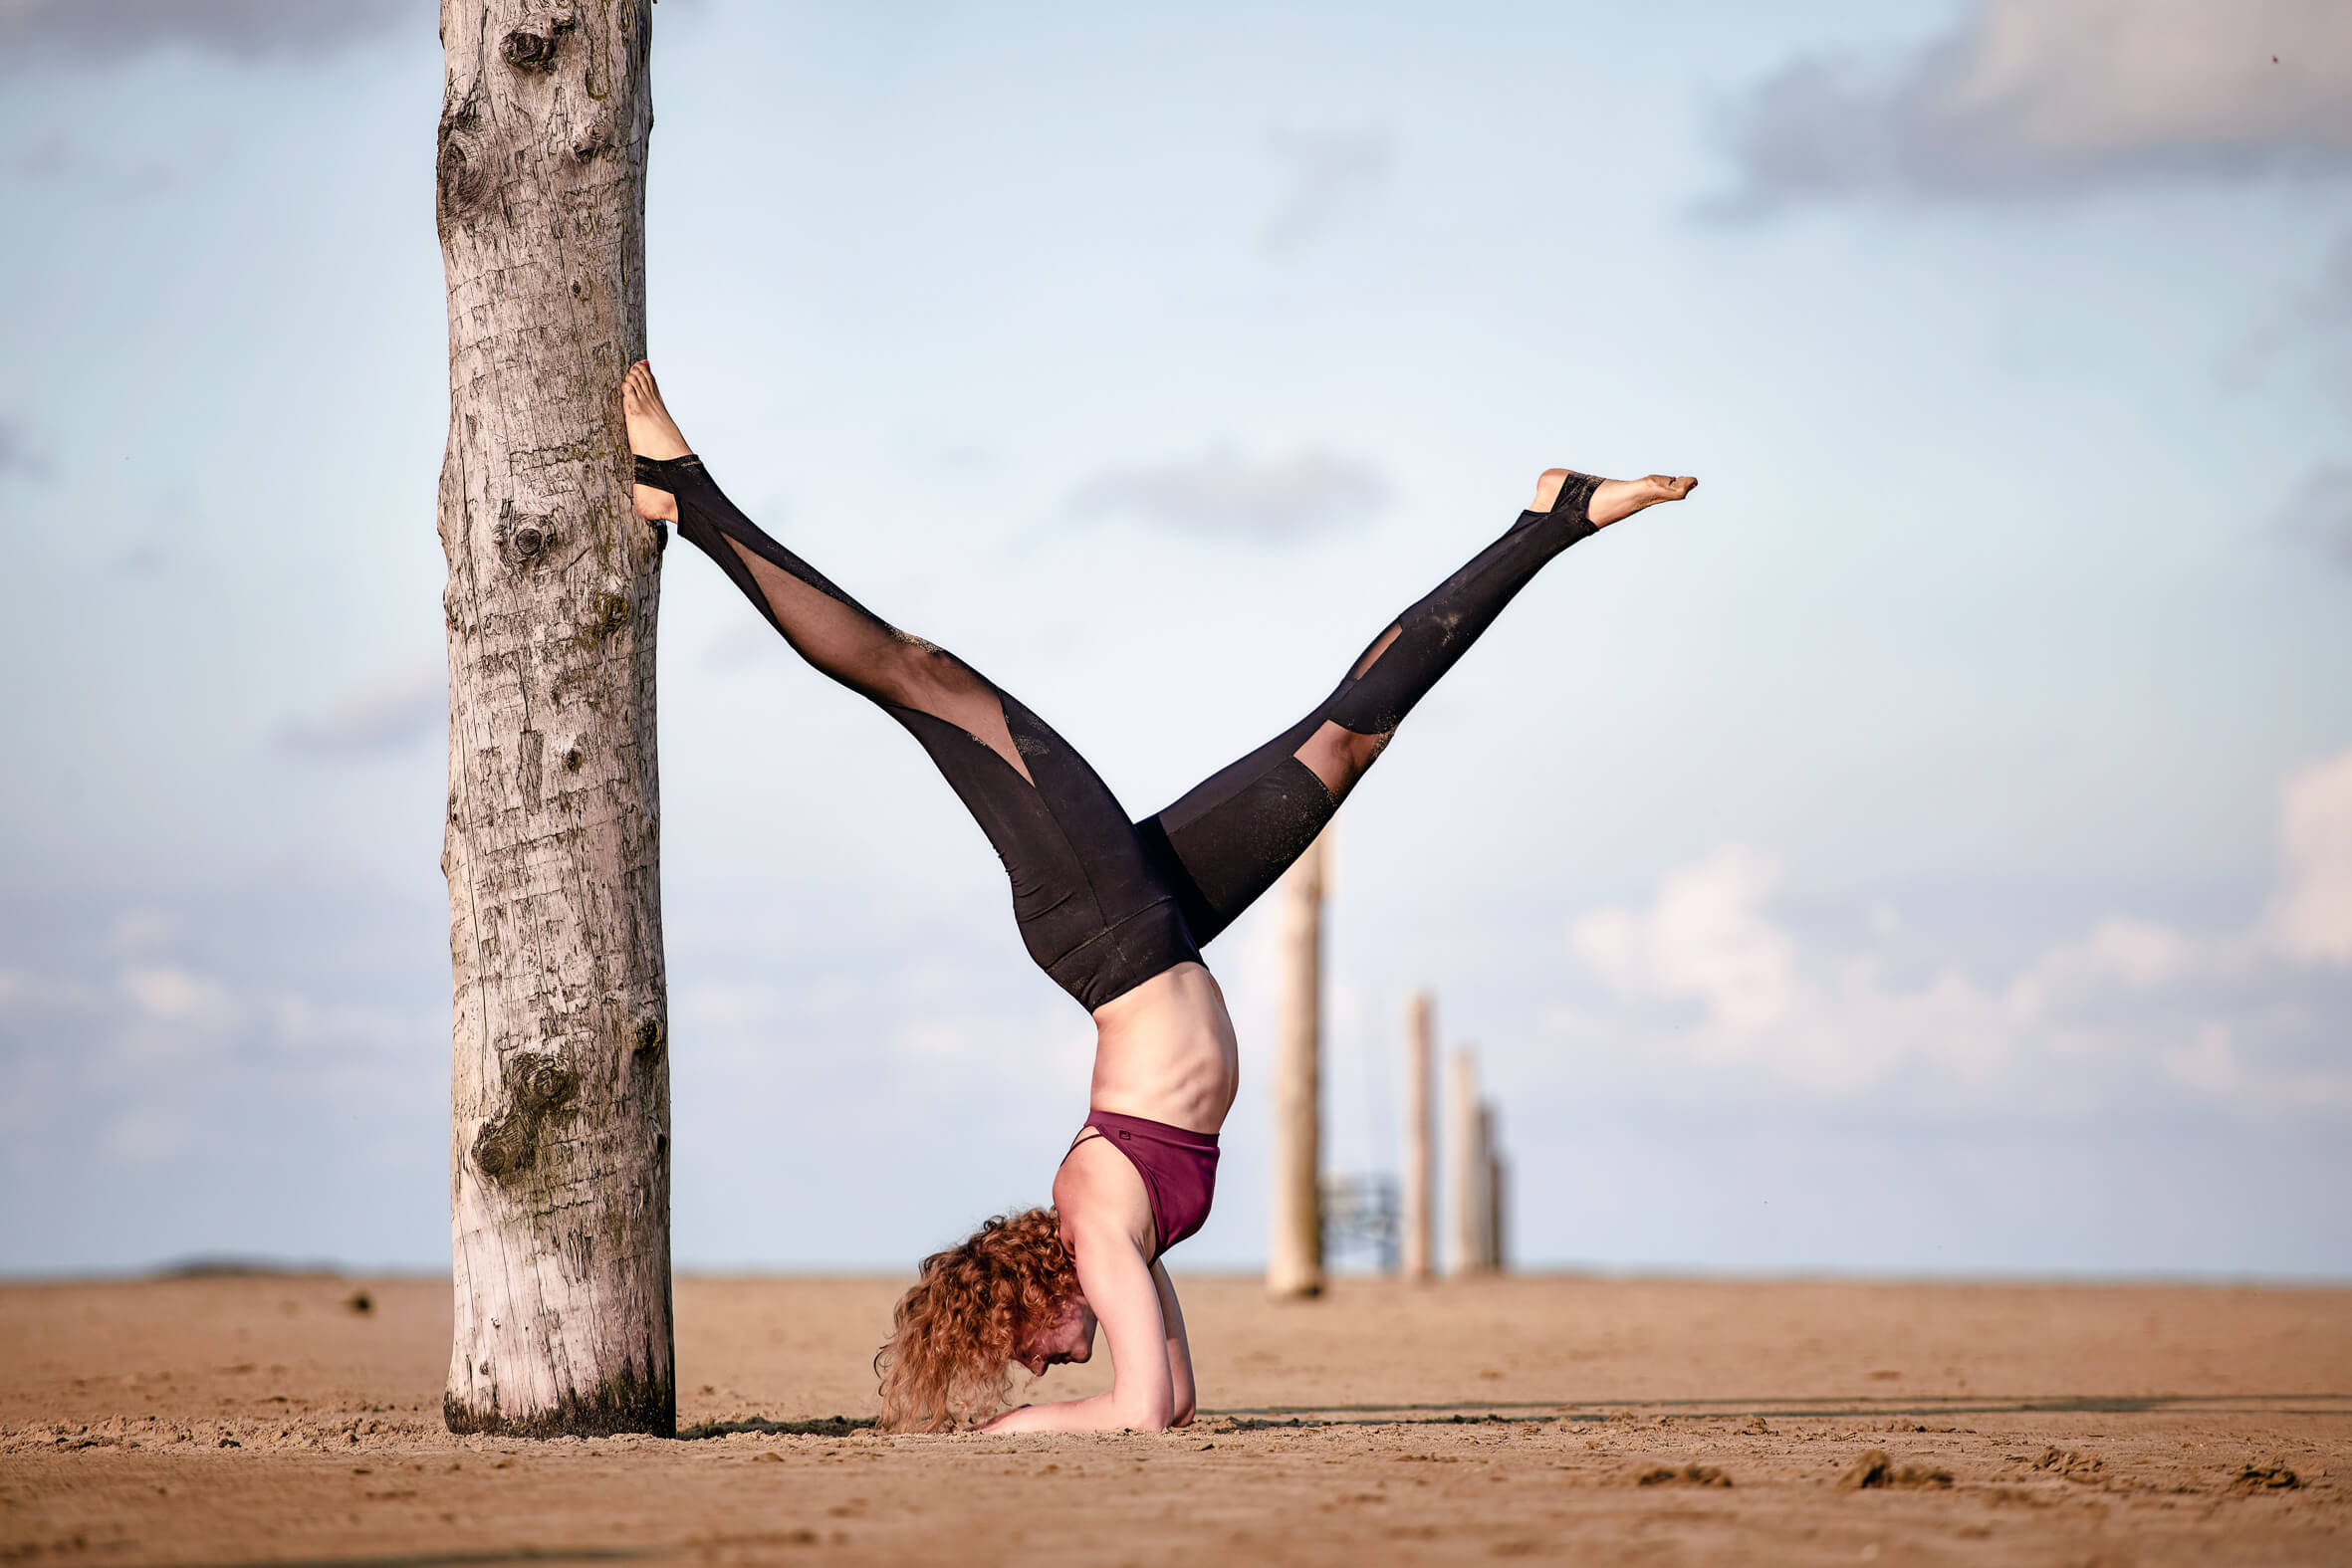 forearmstand-yoga-model-beach-hamburg-germany-split-model